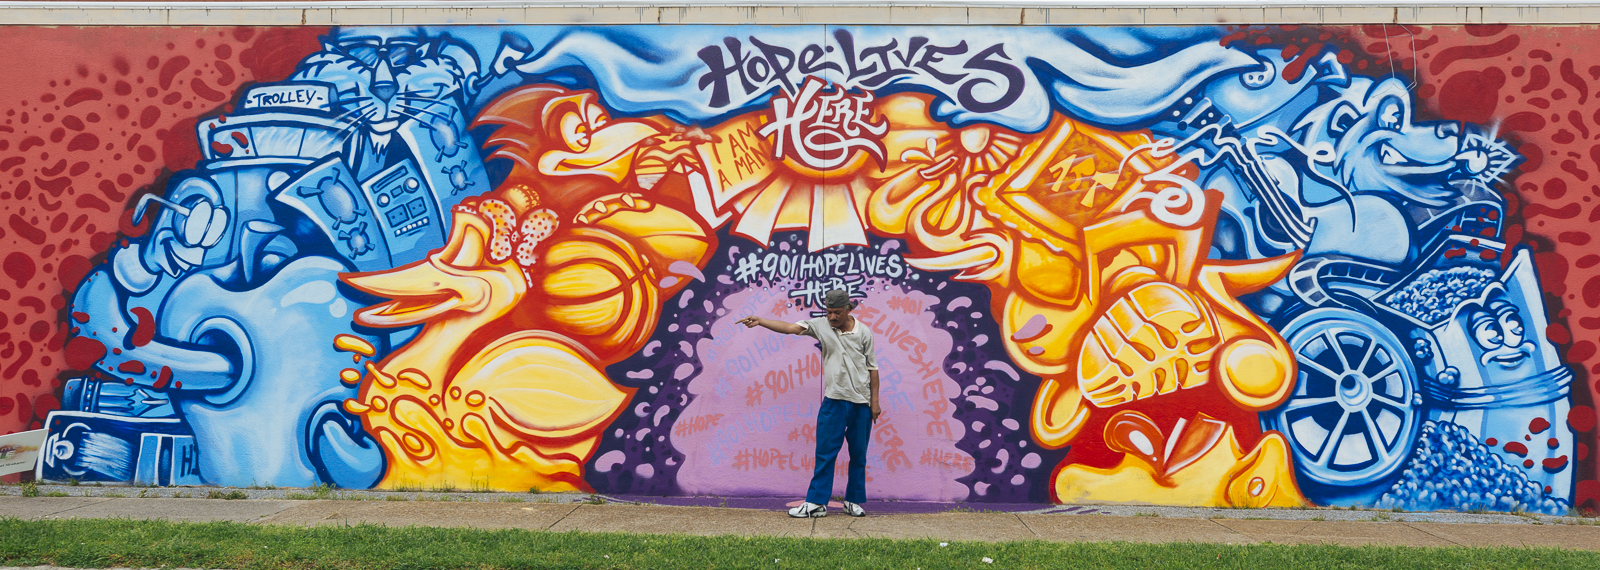 "Local musician ""Morris"" poses in front of a Madison Heights mural by artist Toonkey Berry. (Ziggy Mack) <span class=&apos;image-credits&apos;></span>"